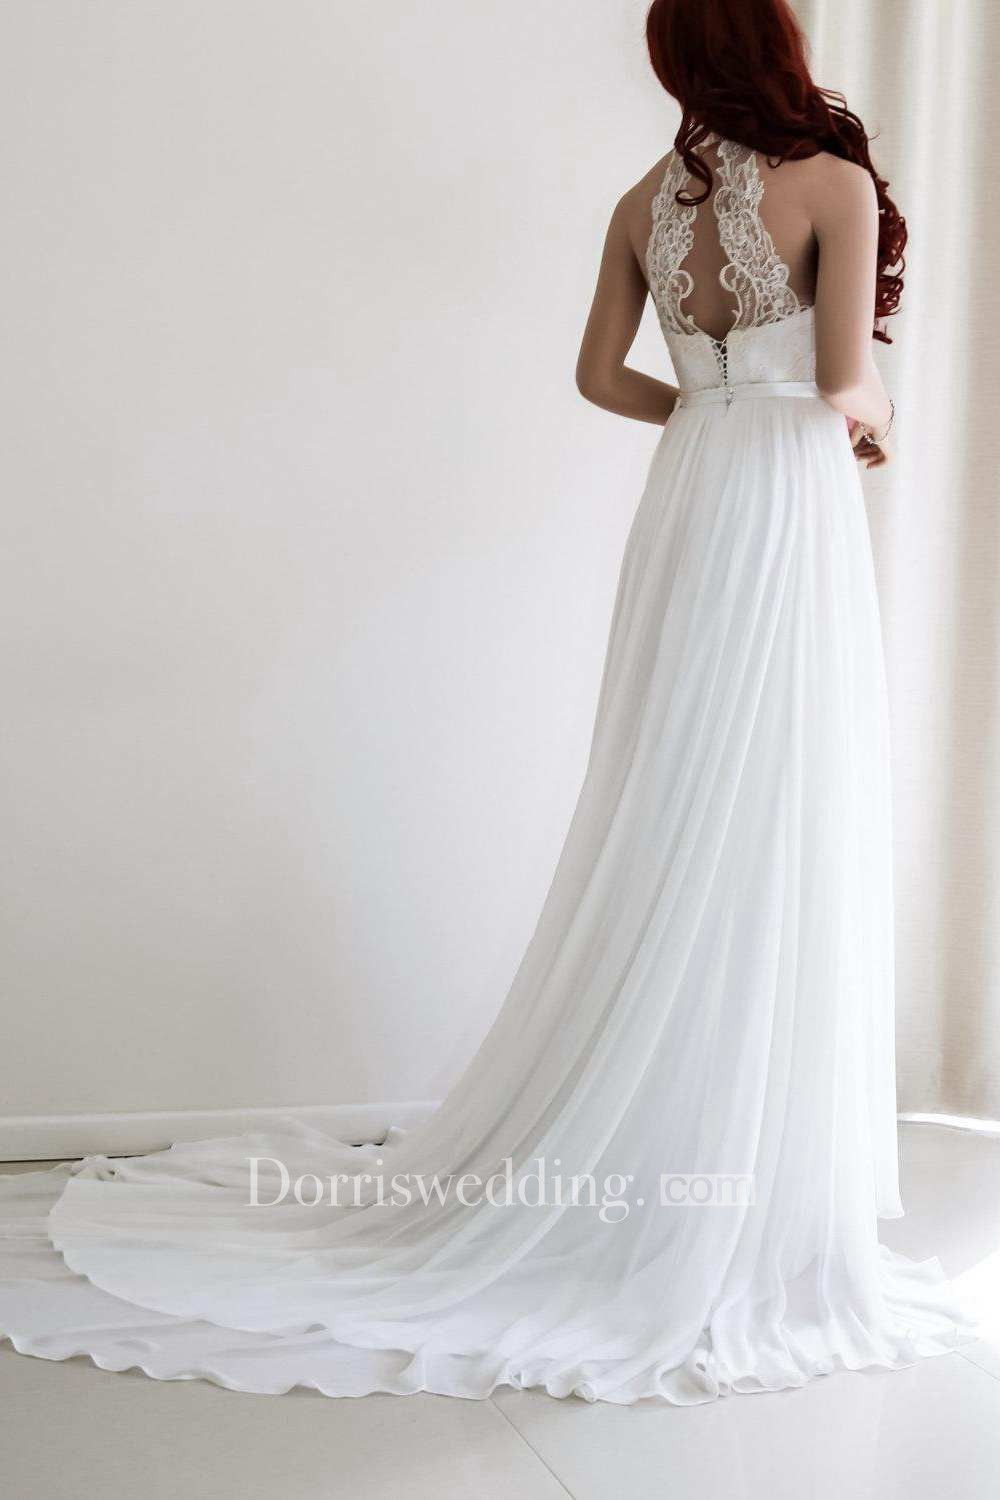 Pleated wedding dress  Lace Appliqued Haltered Empire Chiffon Pleated Wedding Dress With